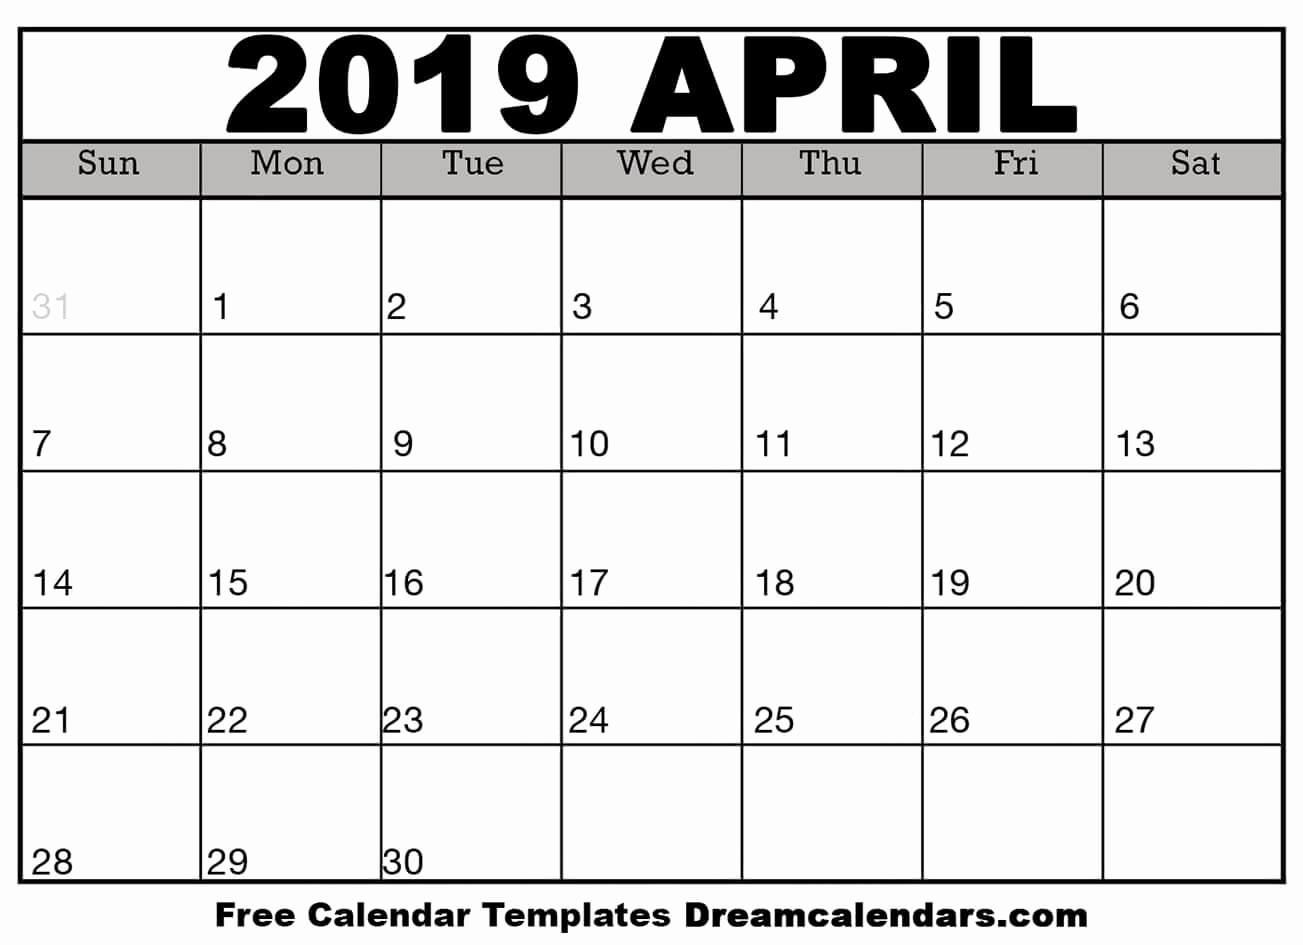 Microsoft Calendar Templates 2019 Best Of Printable April 2019 Calendar